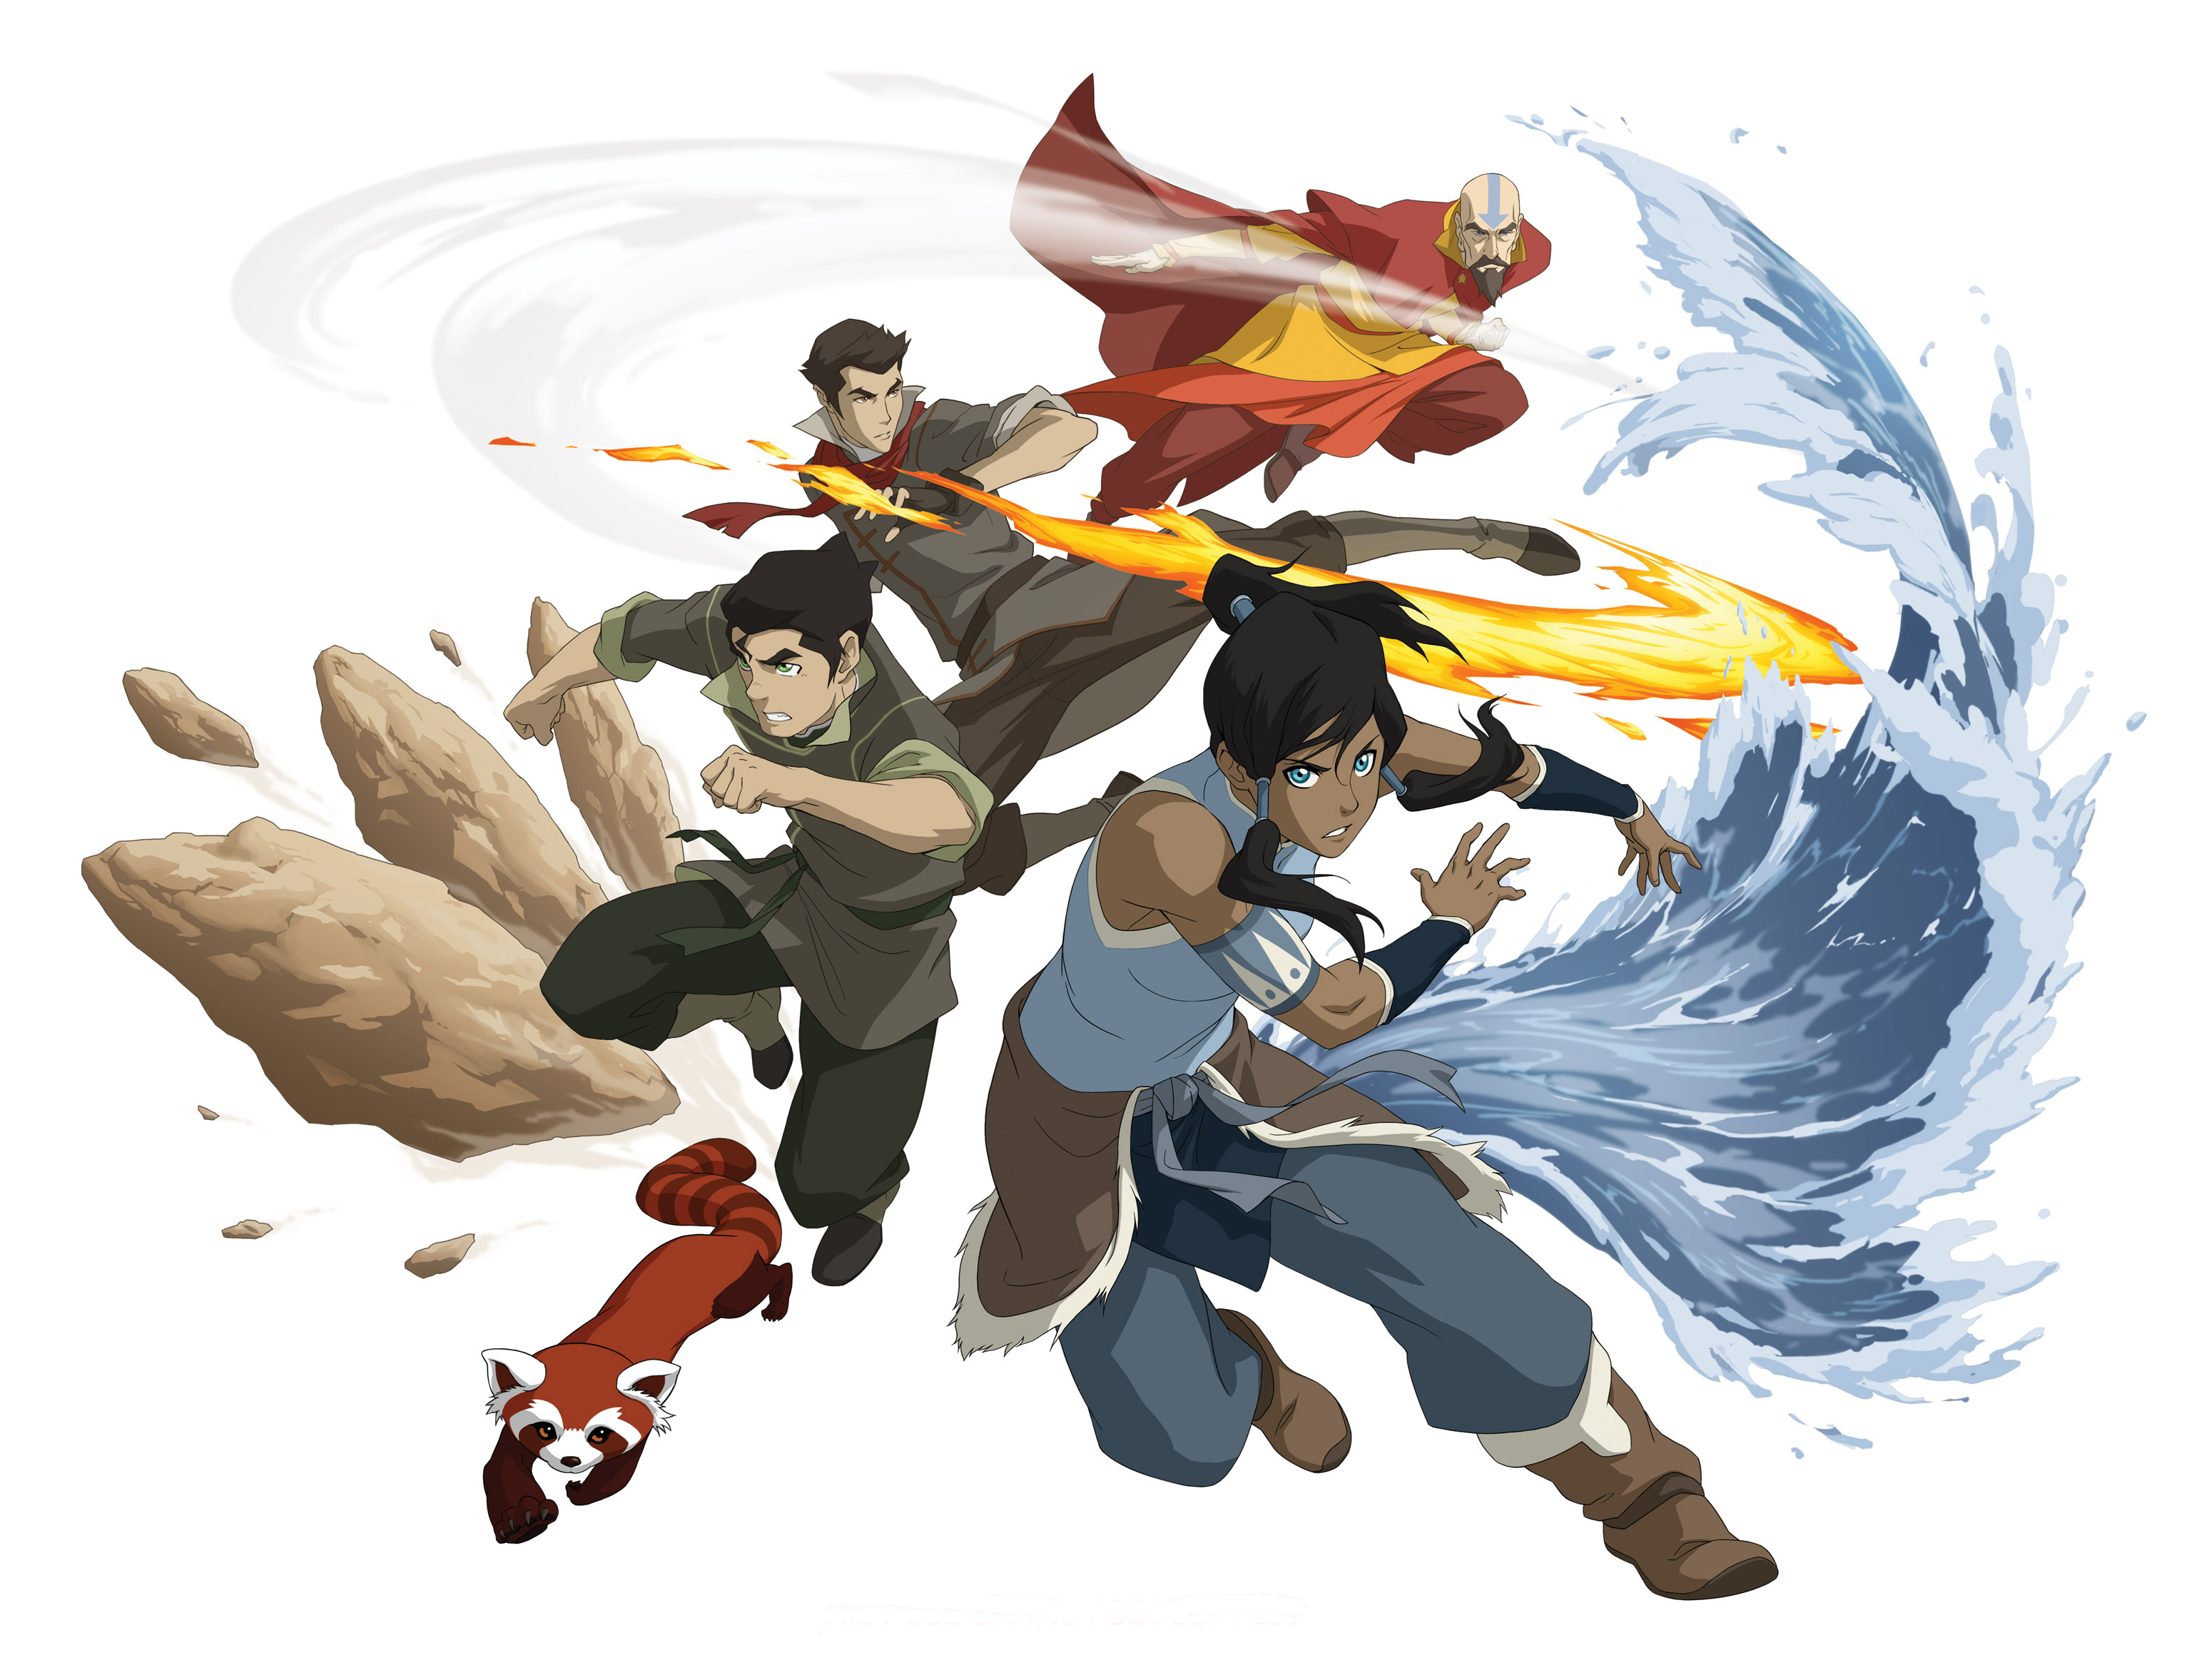 File:Avatar Korra's Team.jpg